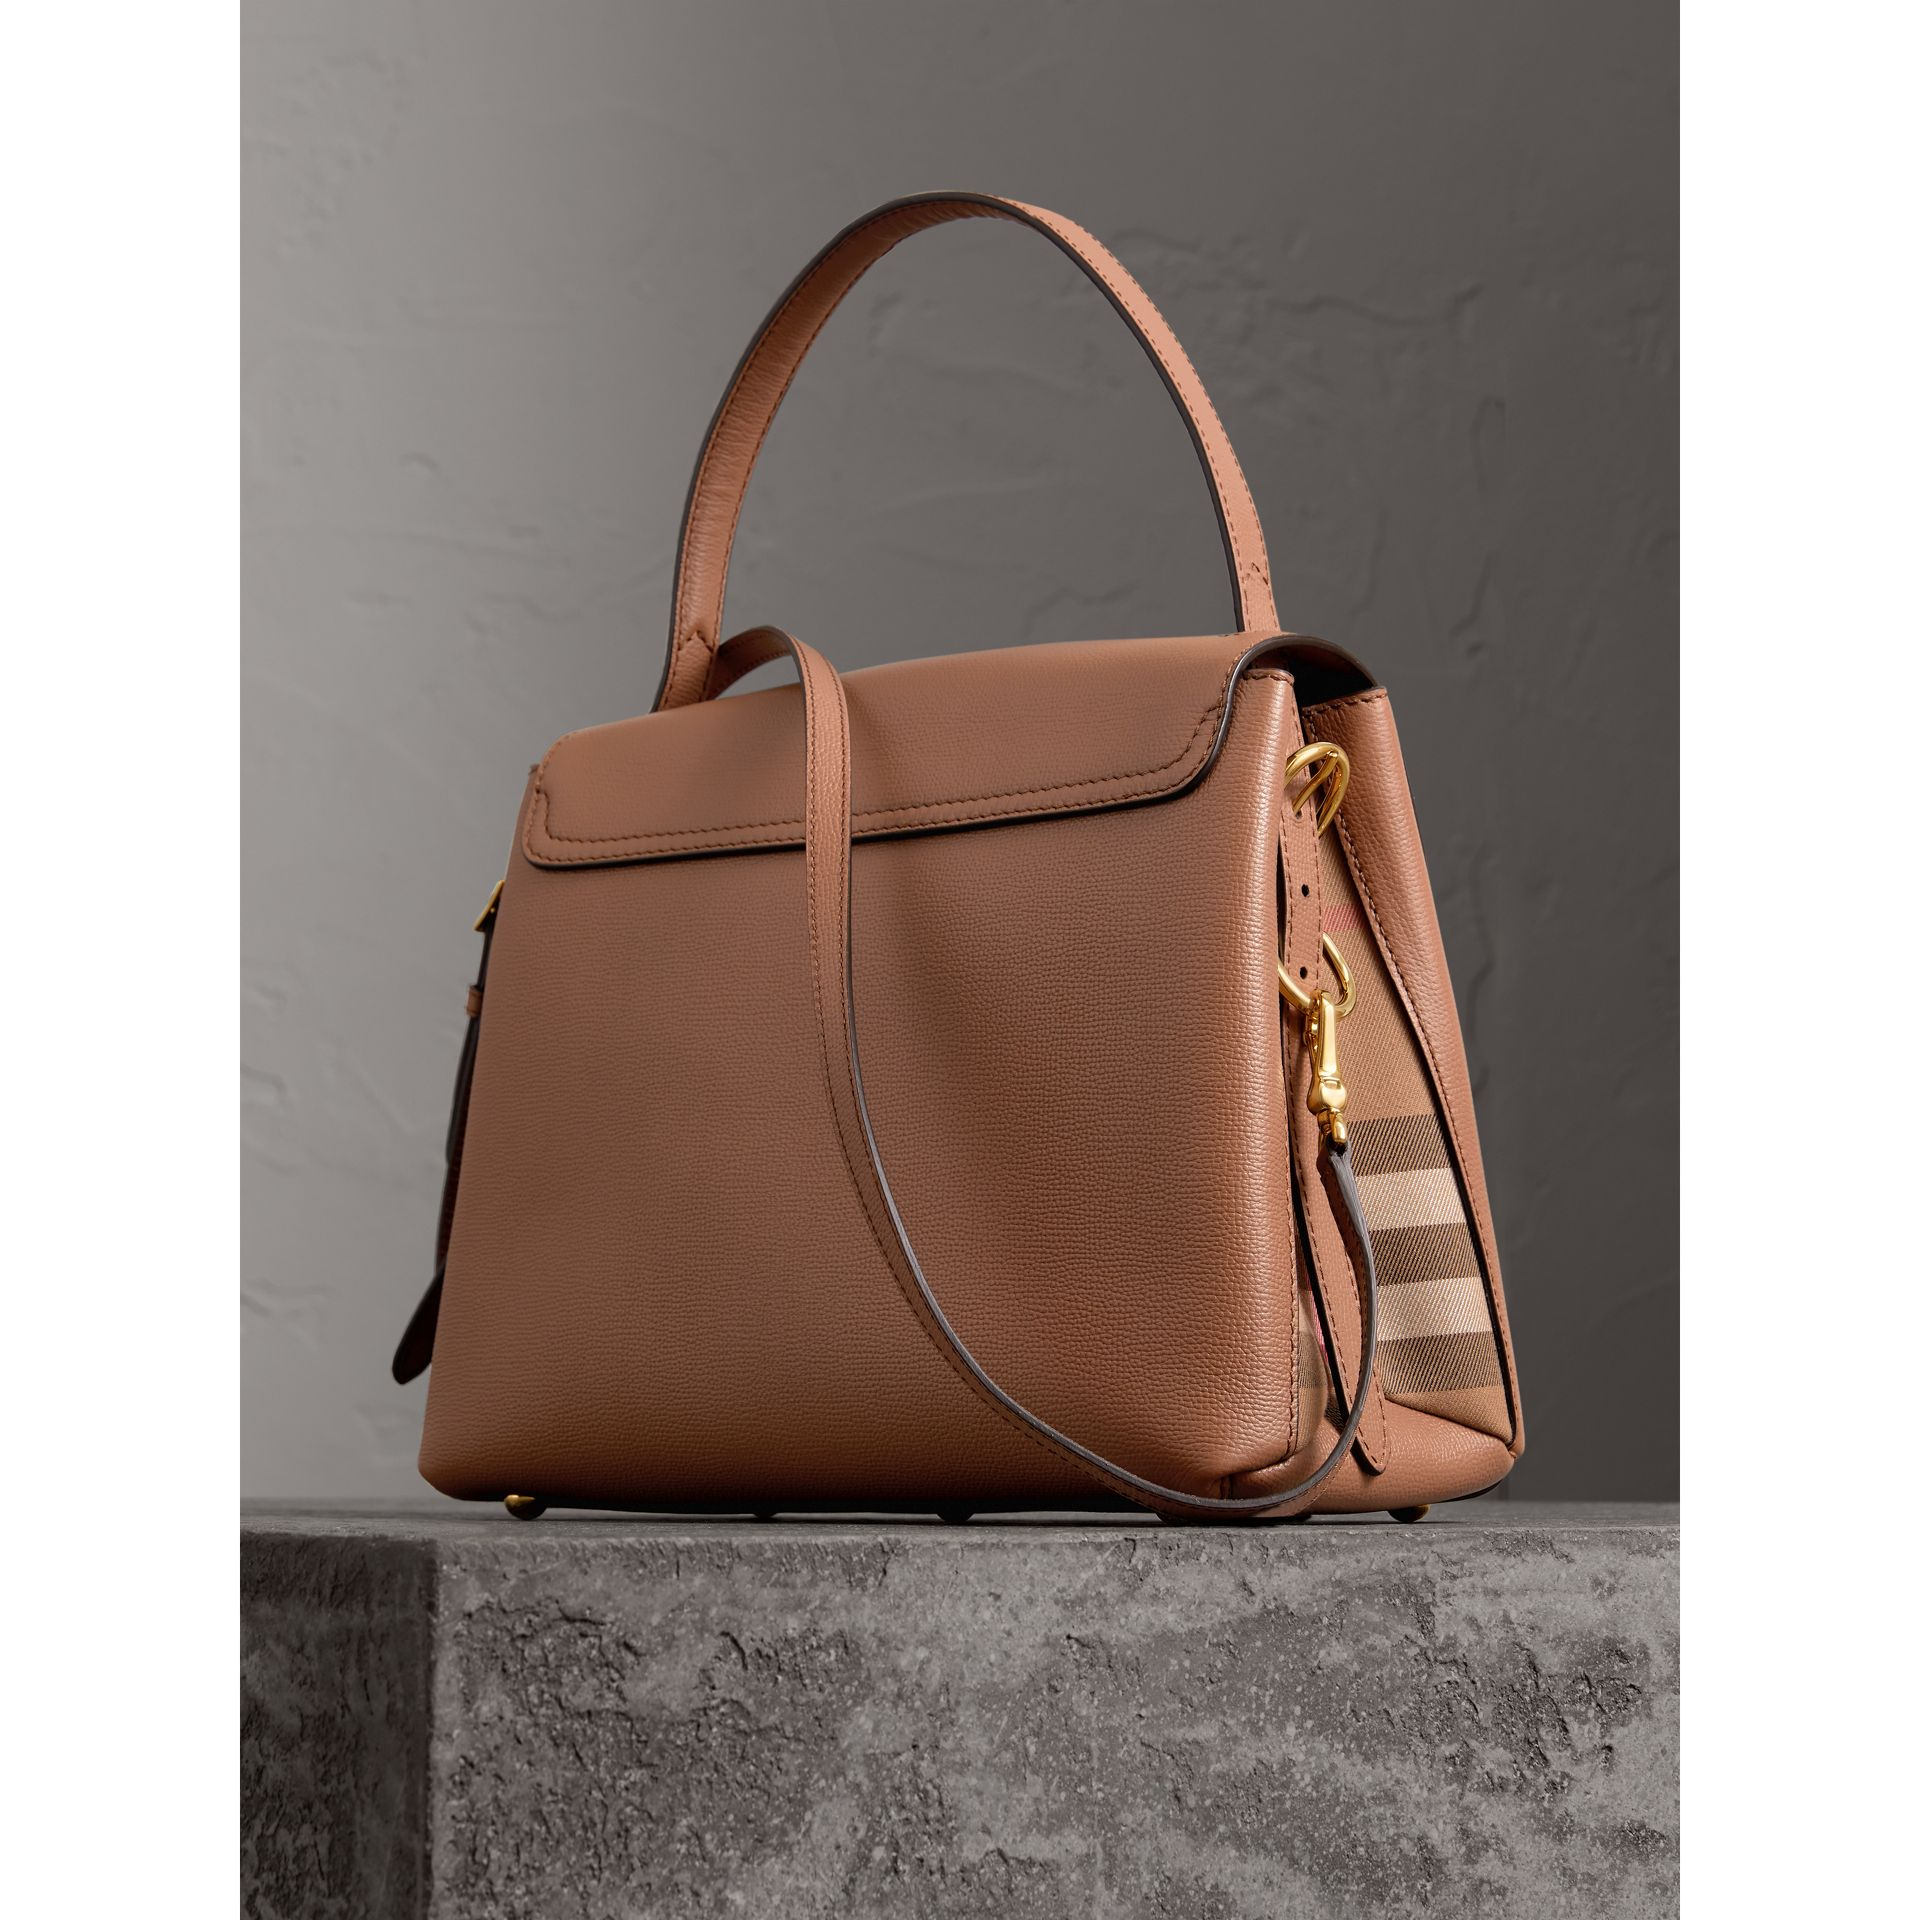 Medium Grainy Leather and House Check Tote Bag in Dark Sand - Women | Burberry Singapore - gallery image 4